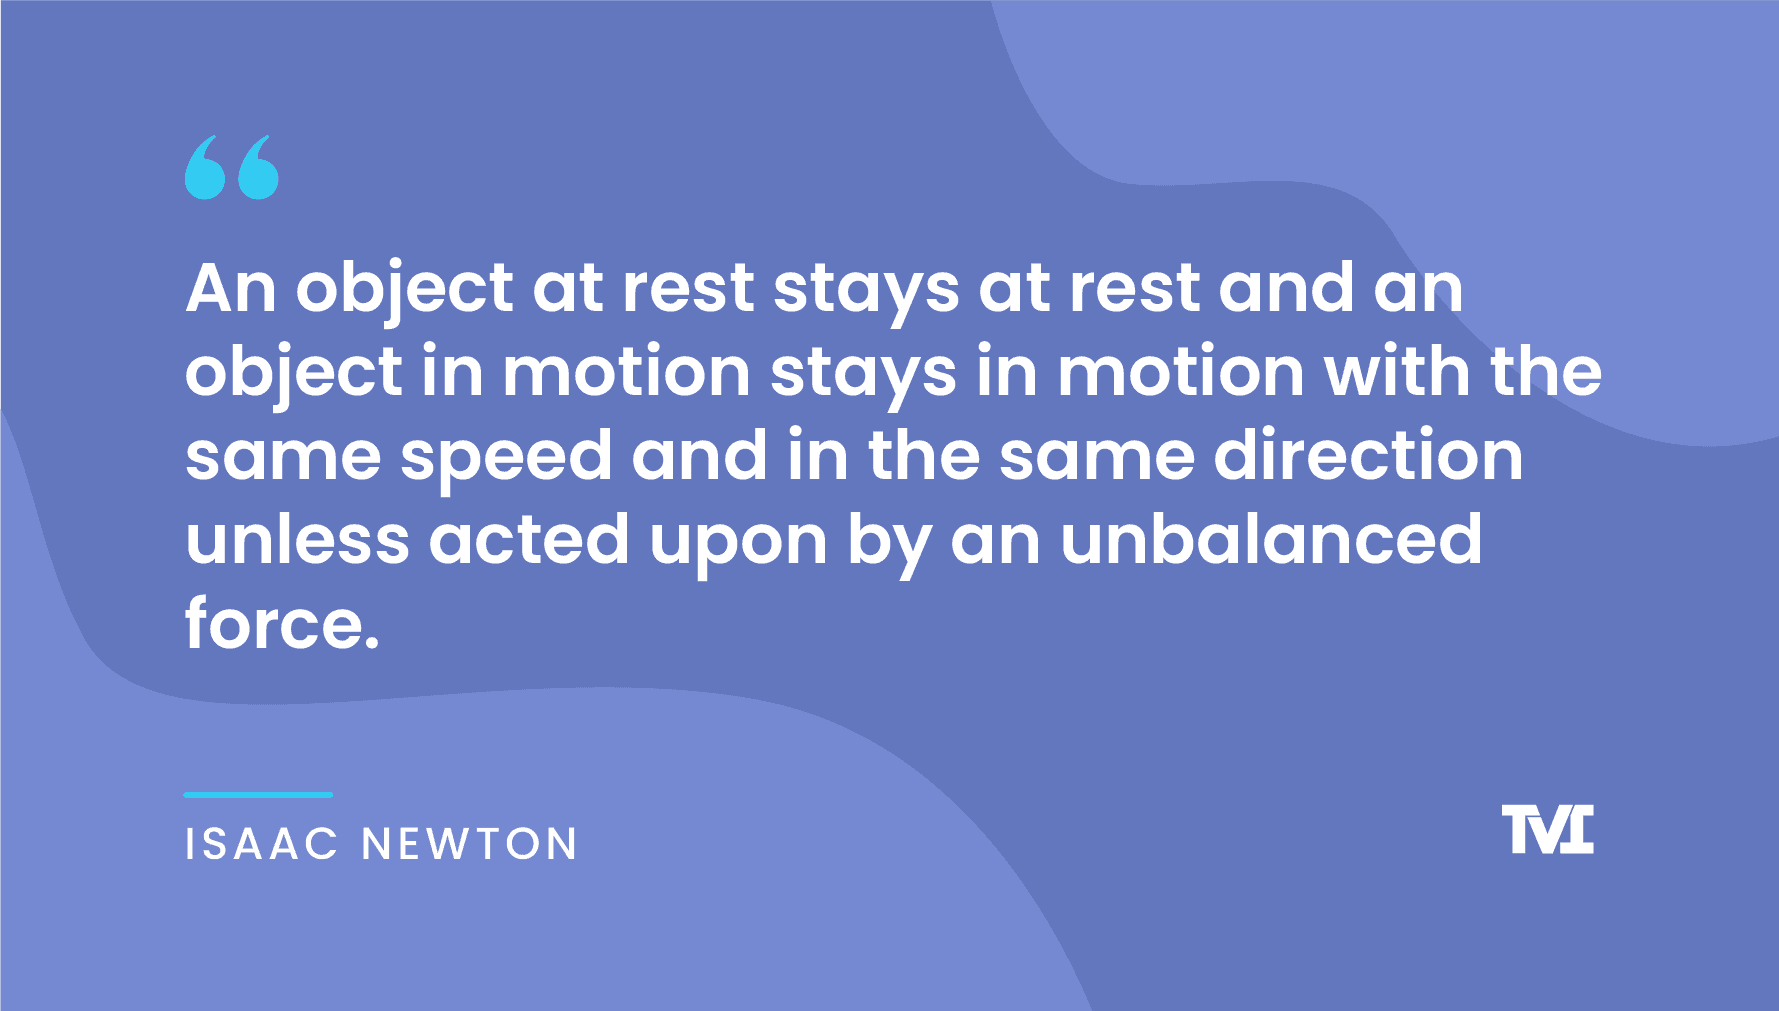 """productivity quotes: """"An object at rest stays at rest and an object in motion stays in motion with the same speed and in the same direction unless acted upon by an unbalanced force."""" —Isaac Newton"""